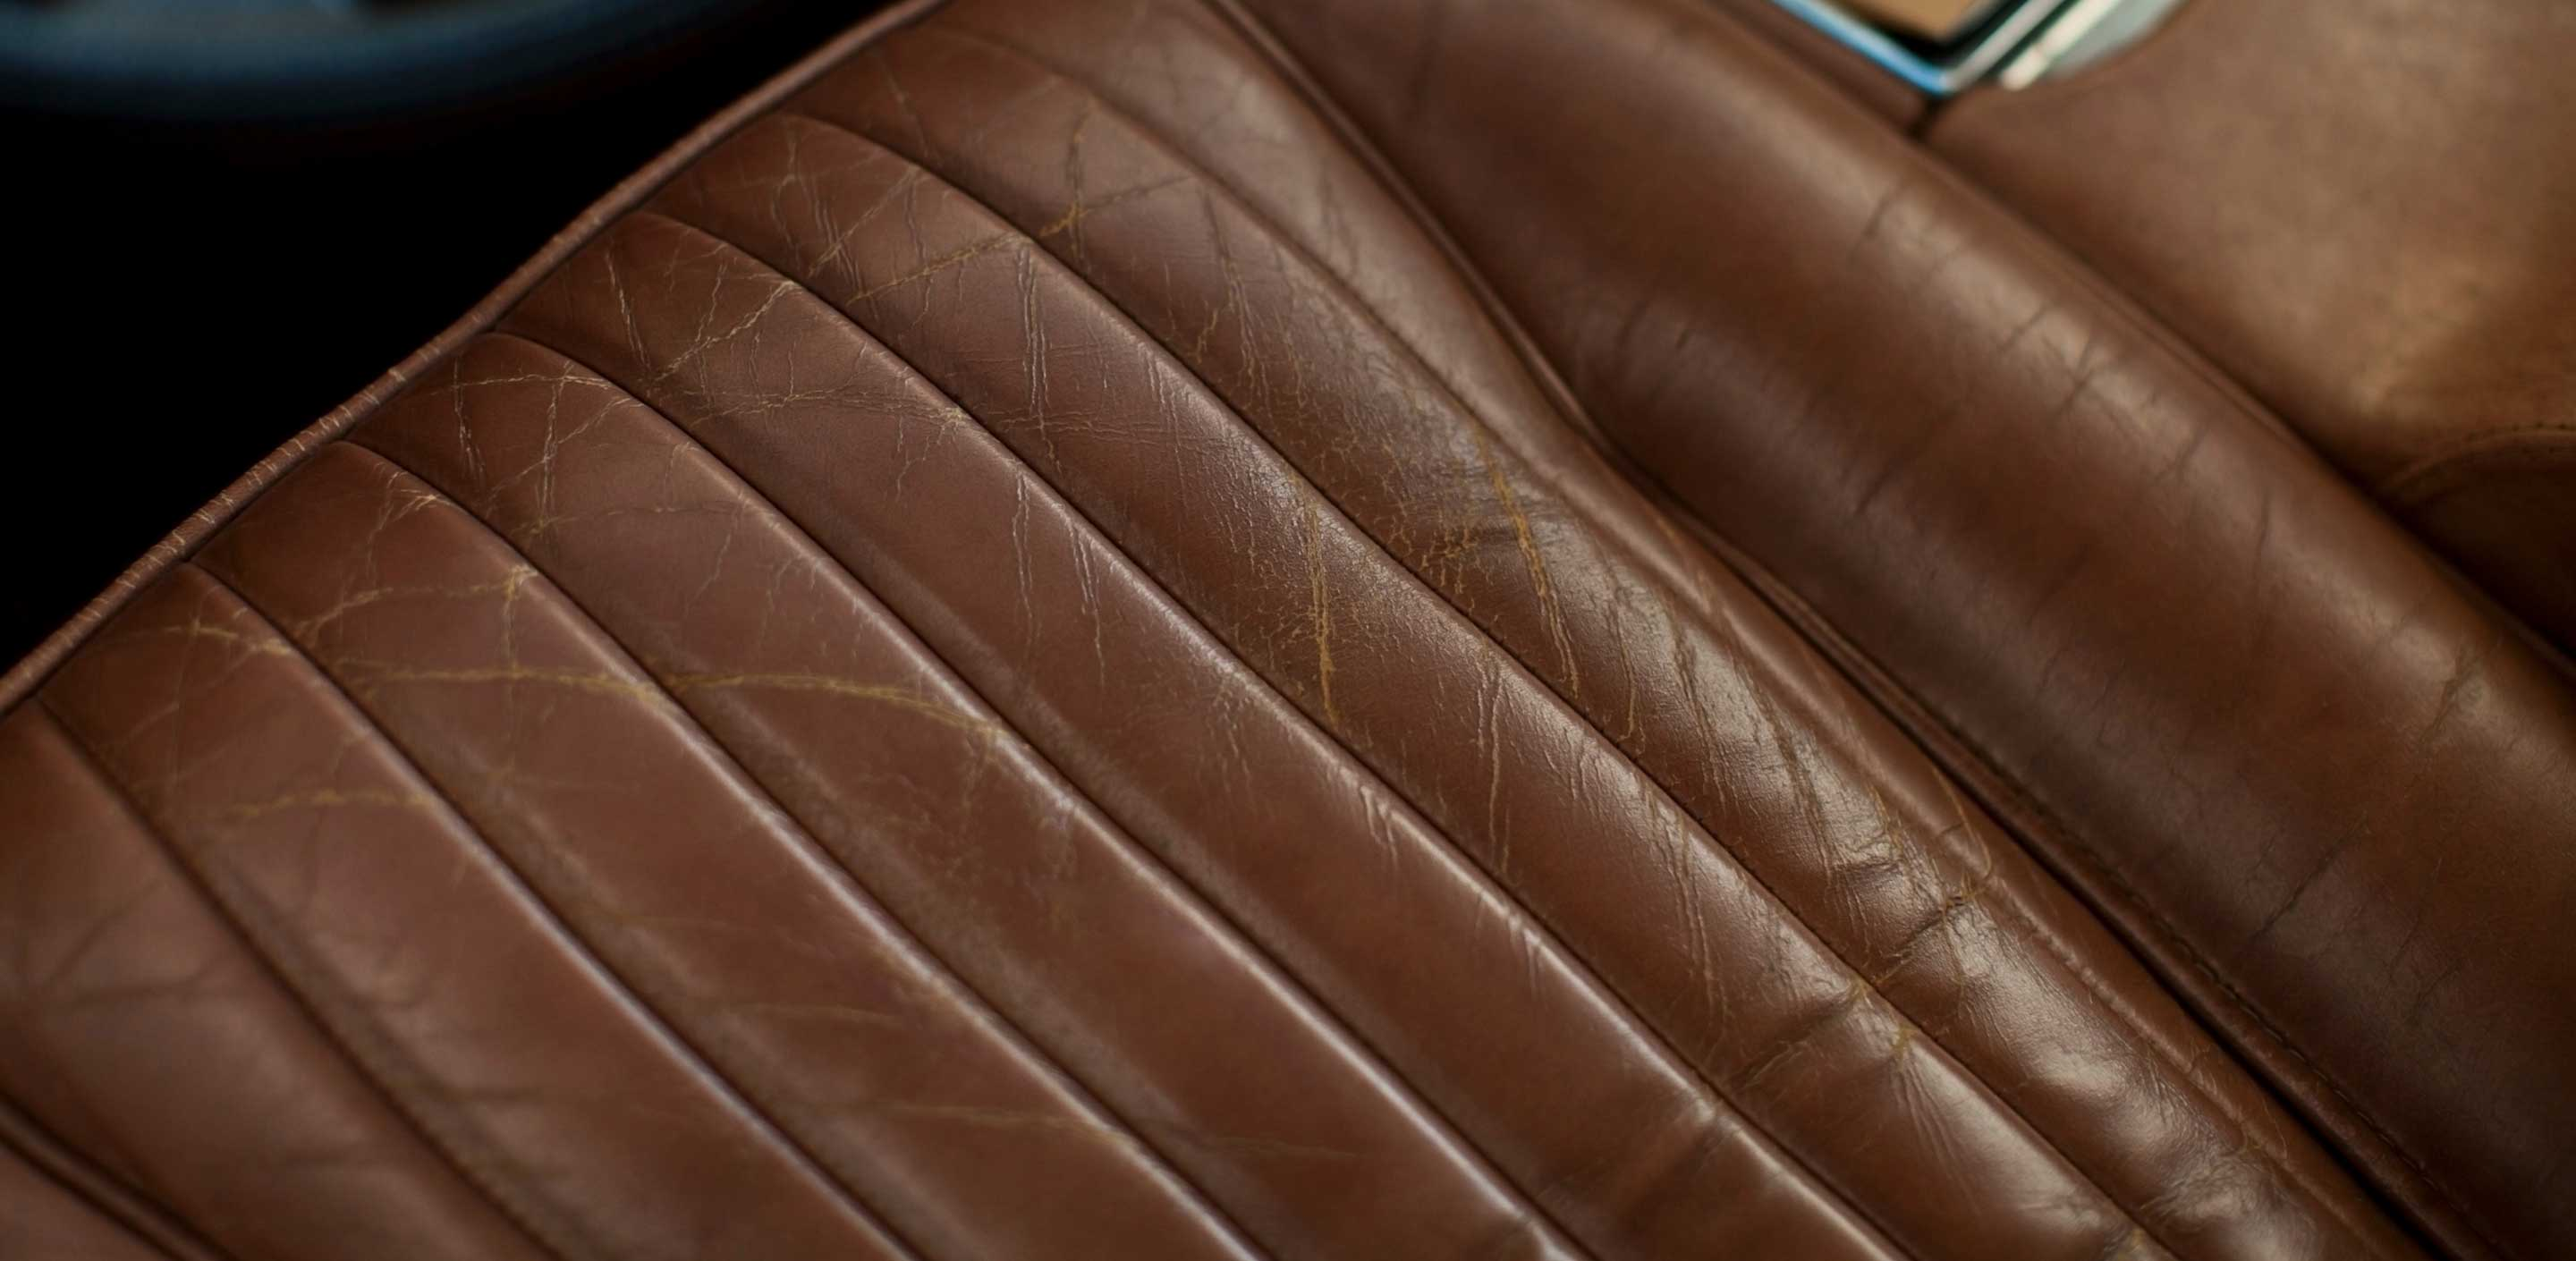 Fixing The Cracked Leather